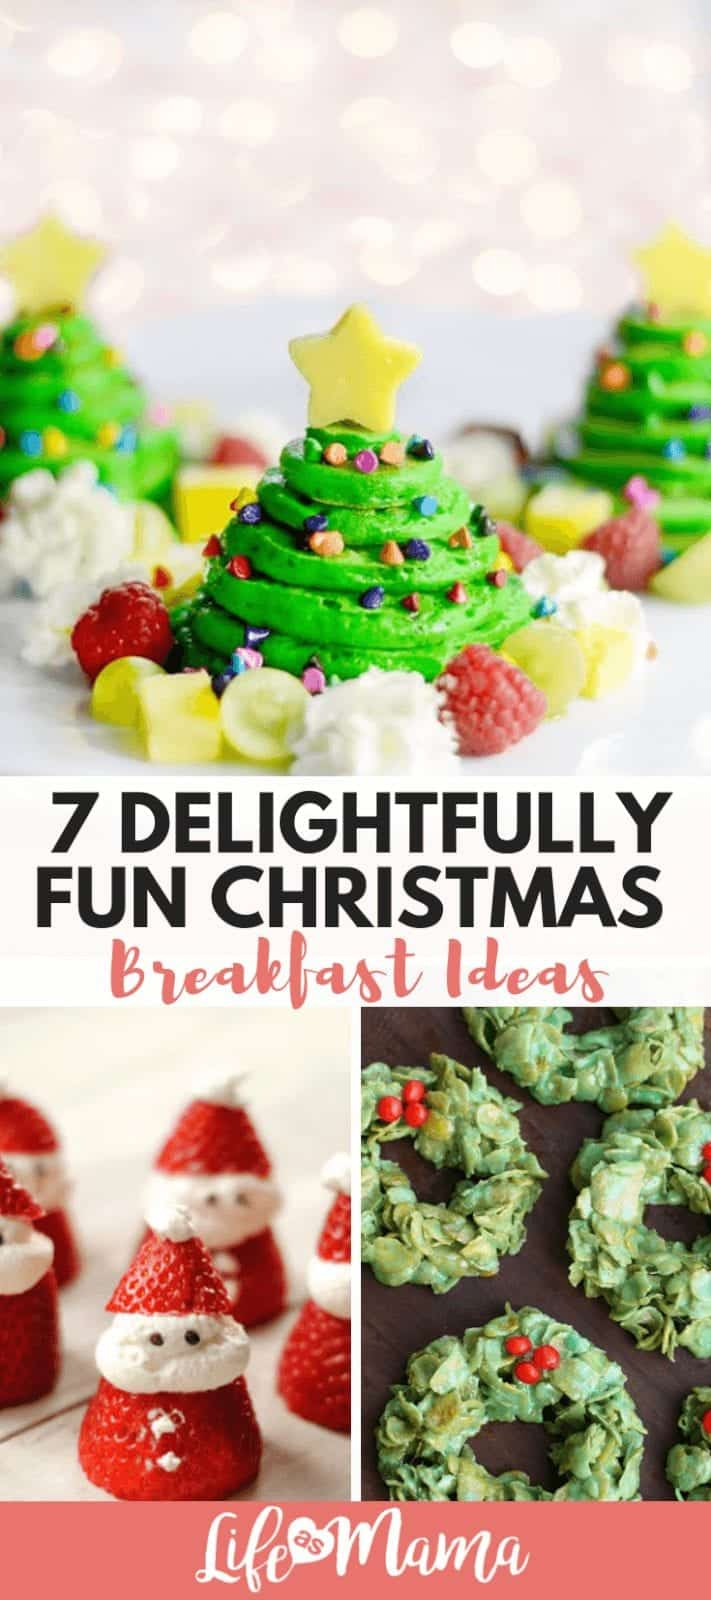 7 Delightfully Fun Christmas Breakfast Ideas